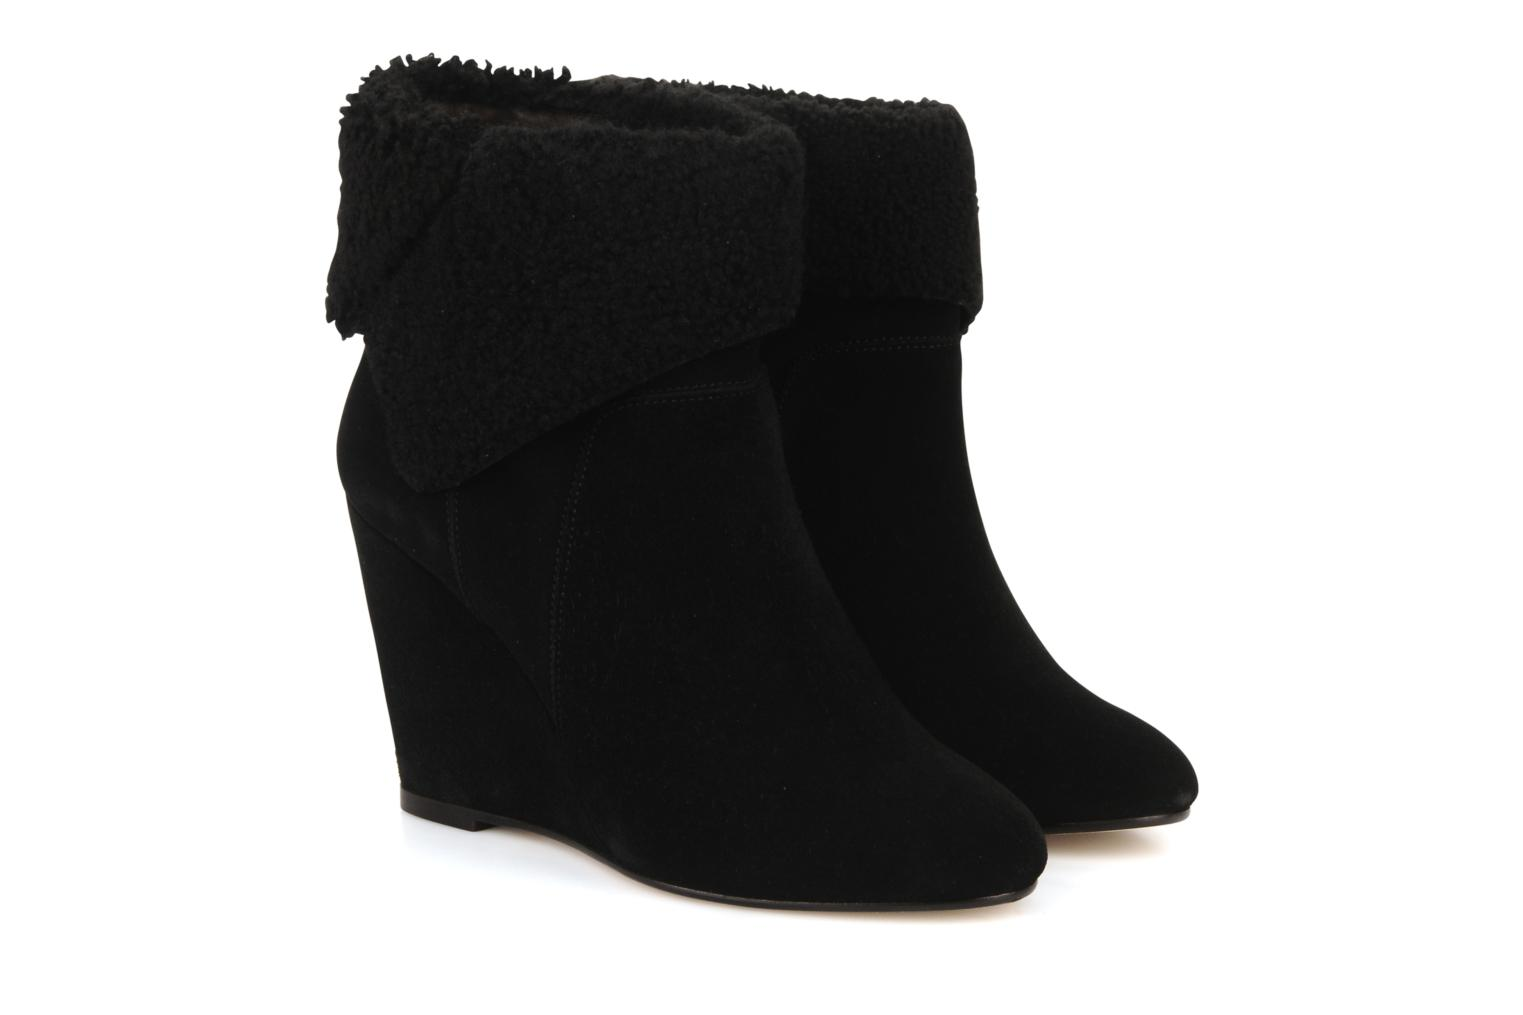 Boots Tila March Wedge booty origami sherling Svart 3/4 bild